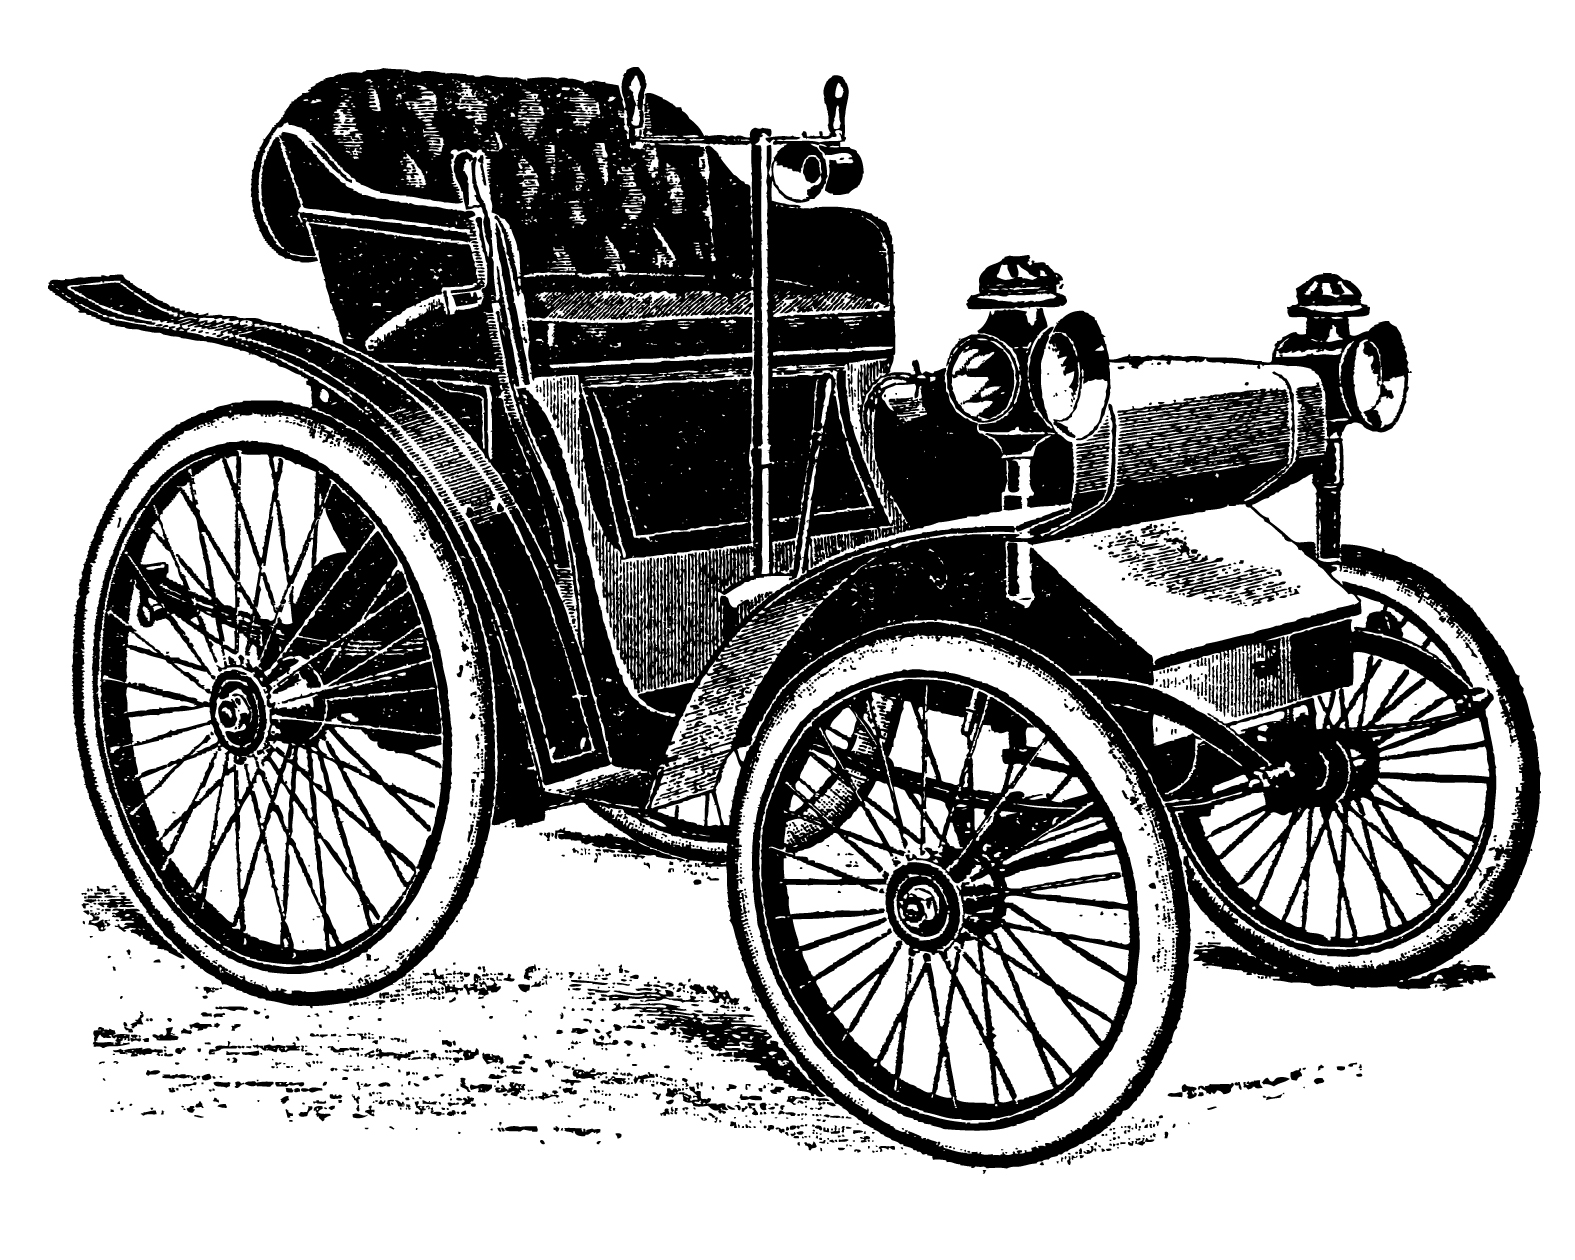 Classical clipart old fashioned car Free vintage Vintage art Free